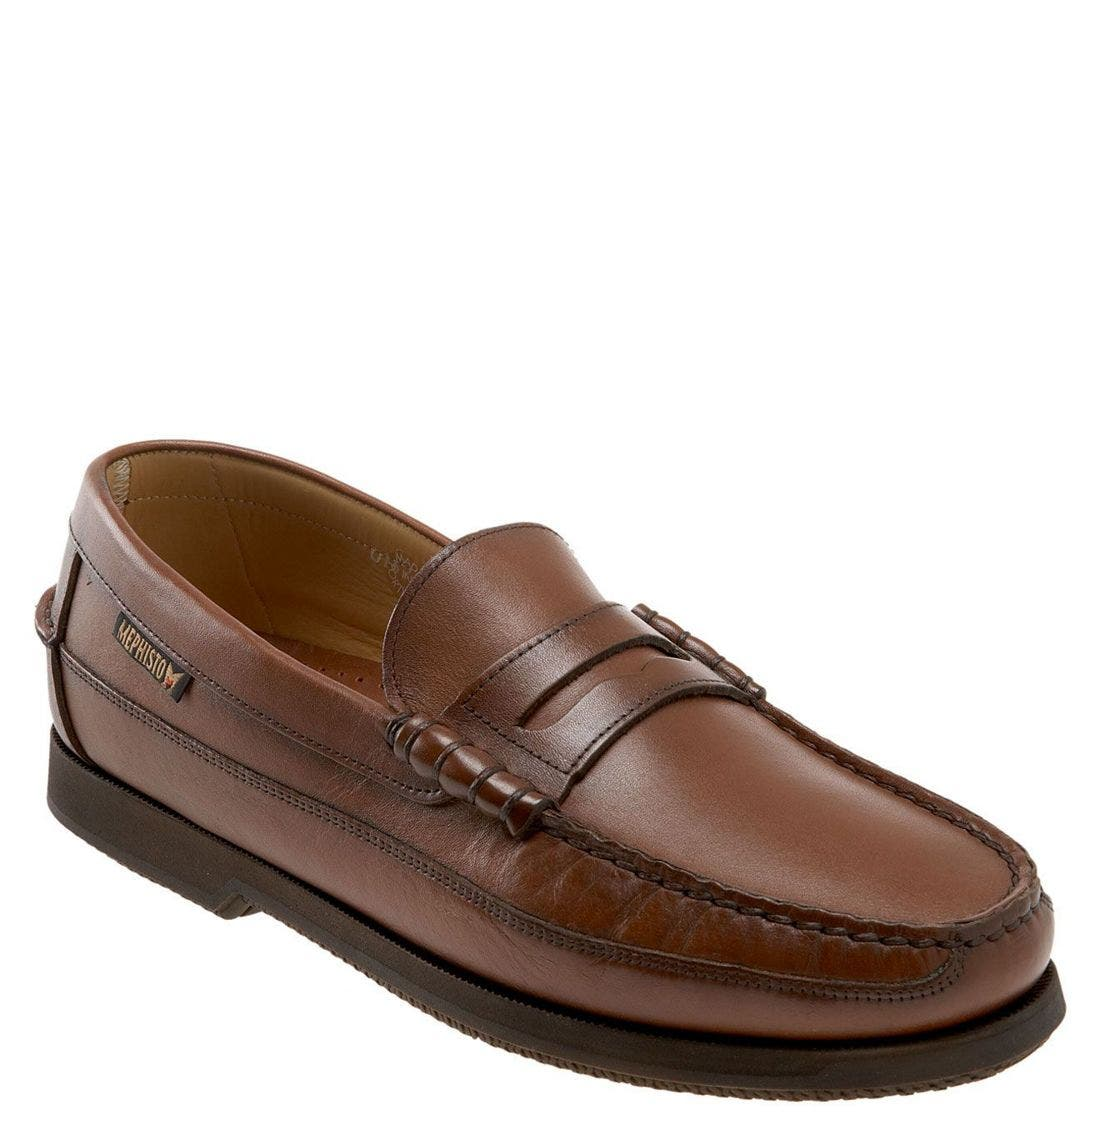 MEPHISTO, 'Cap Vert' Penny Loafer, Main thumbnail 1, color, Rust Leather